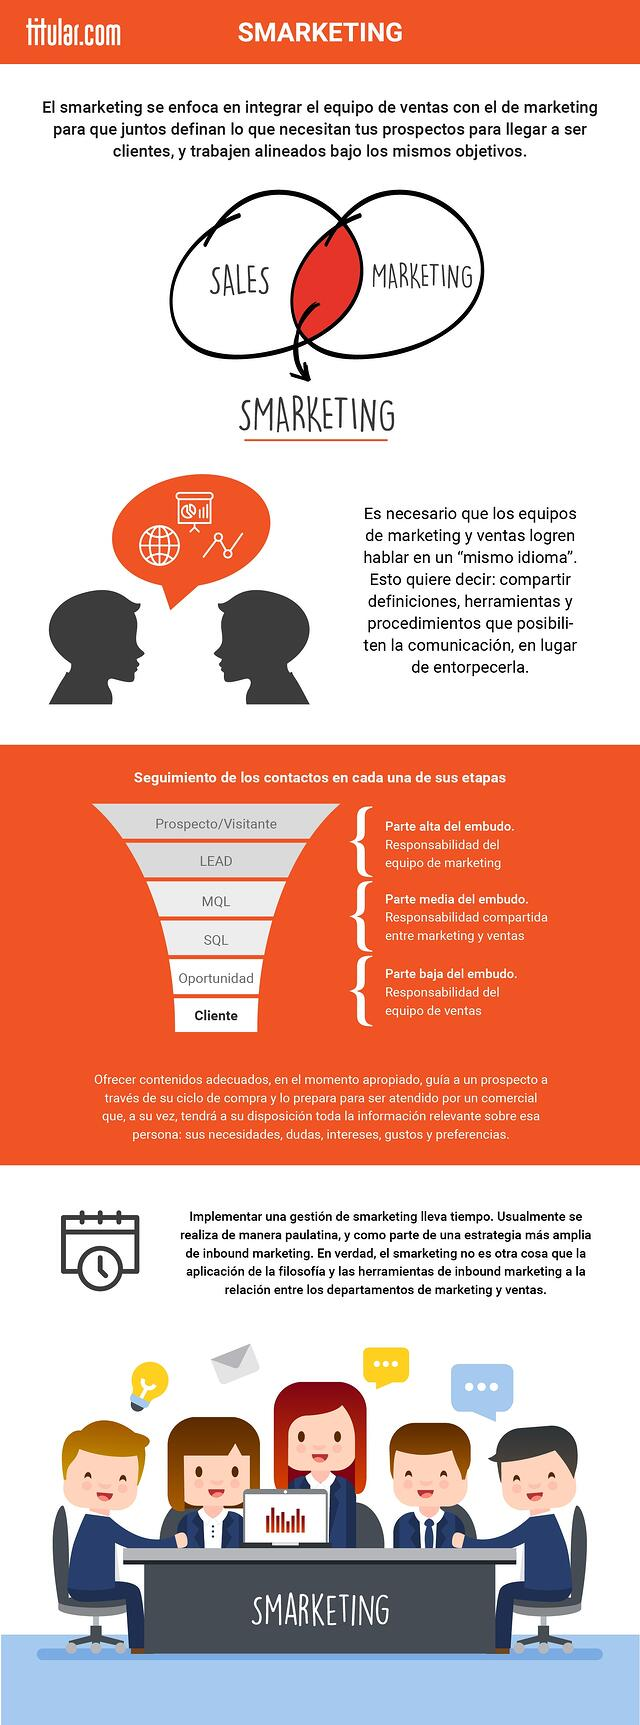 Infografia Smarketing.jpg